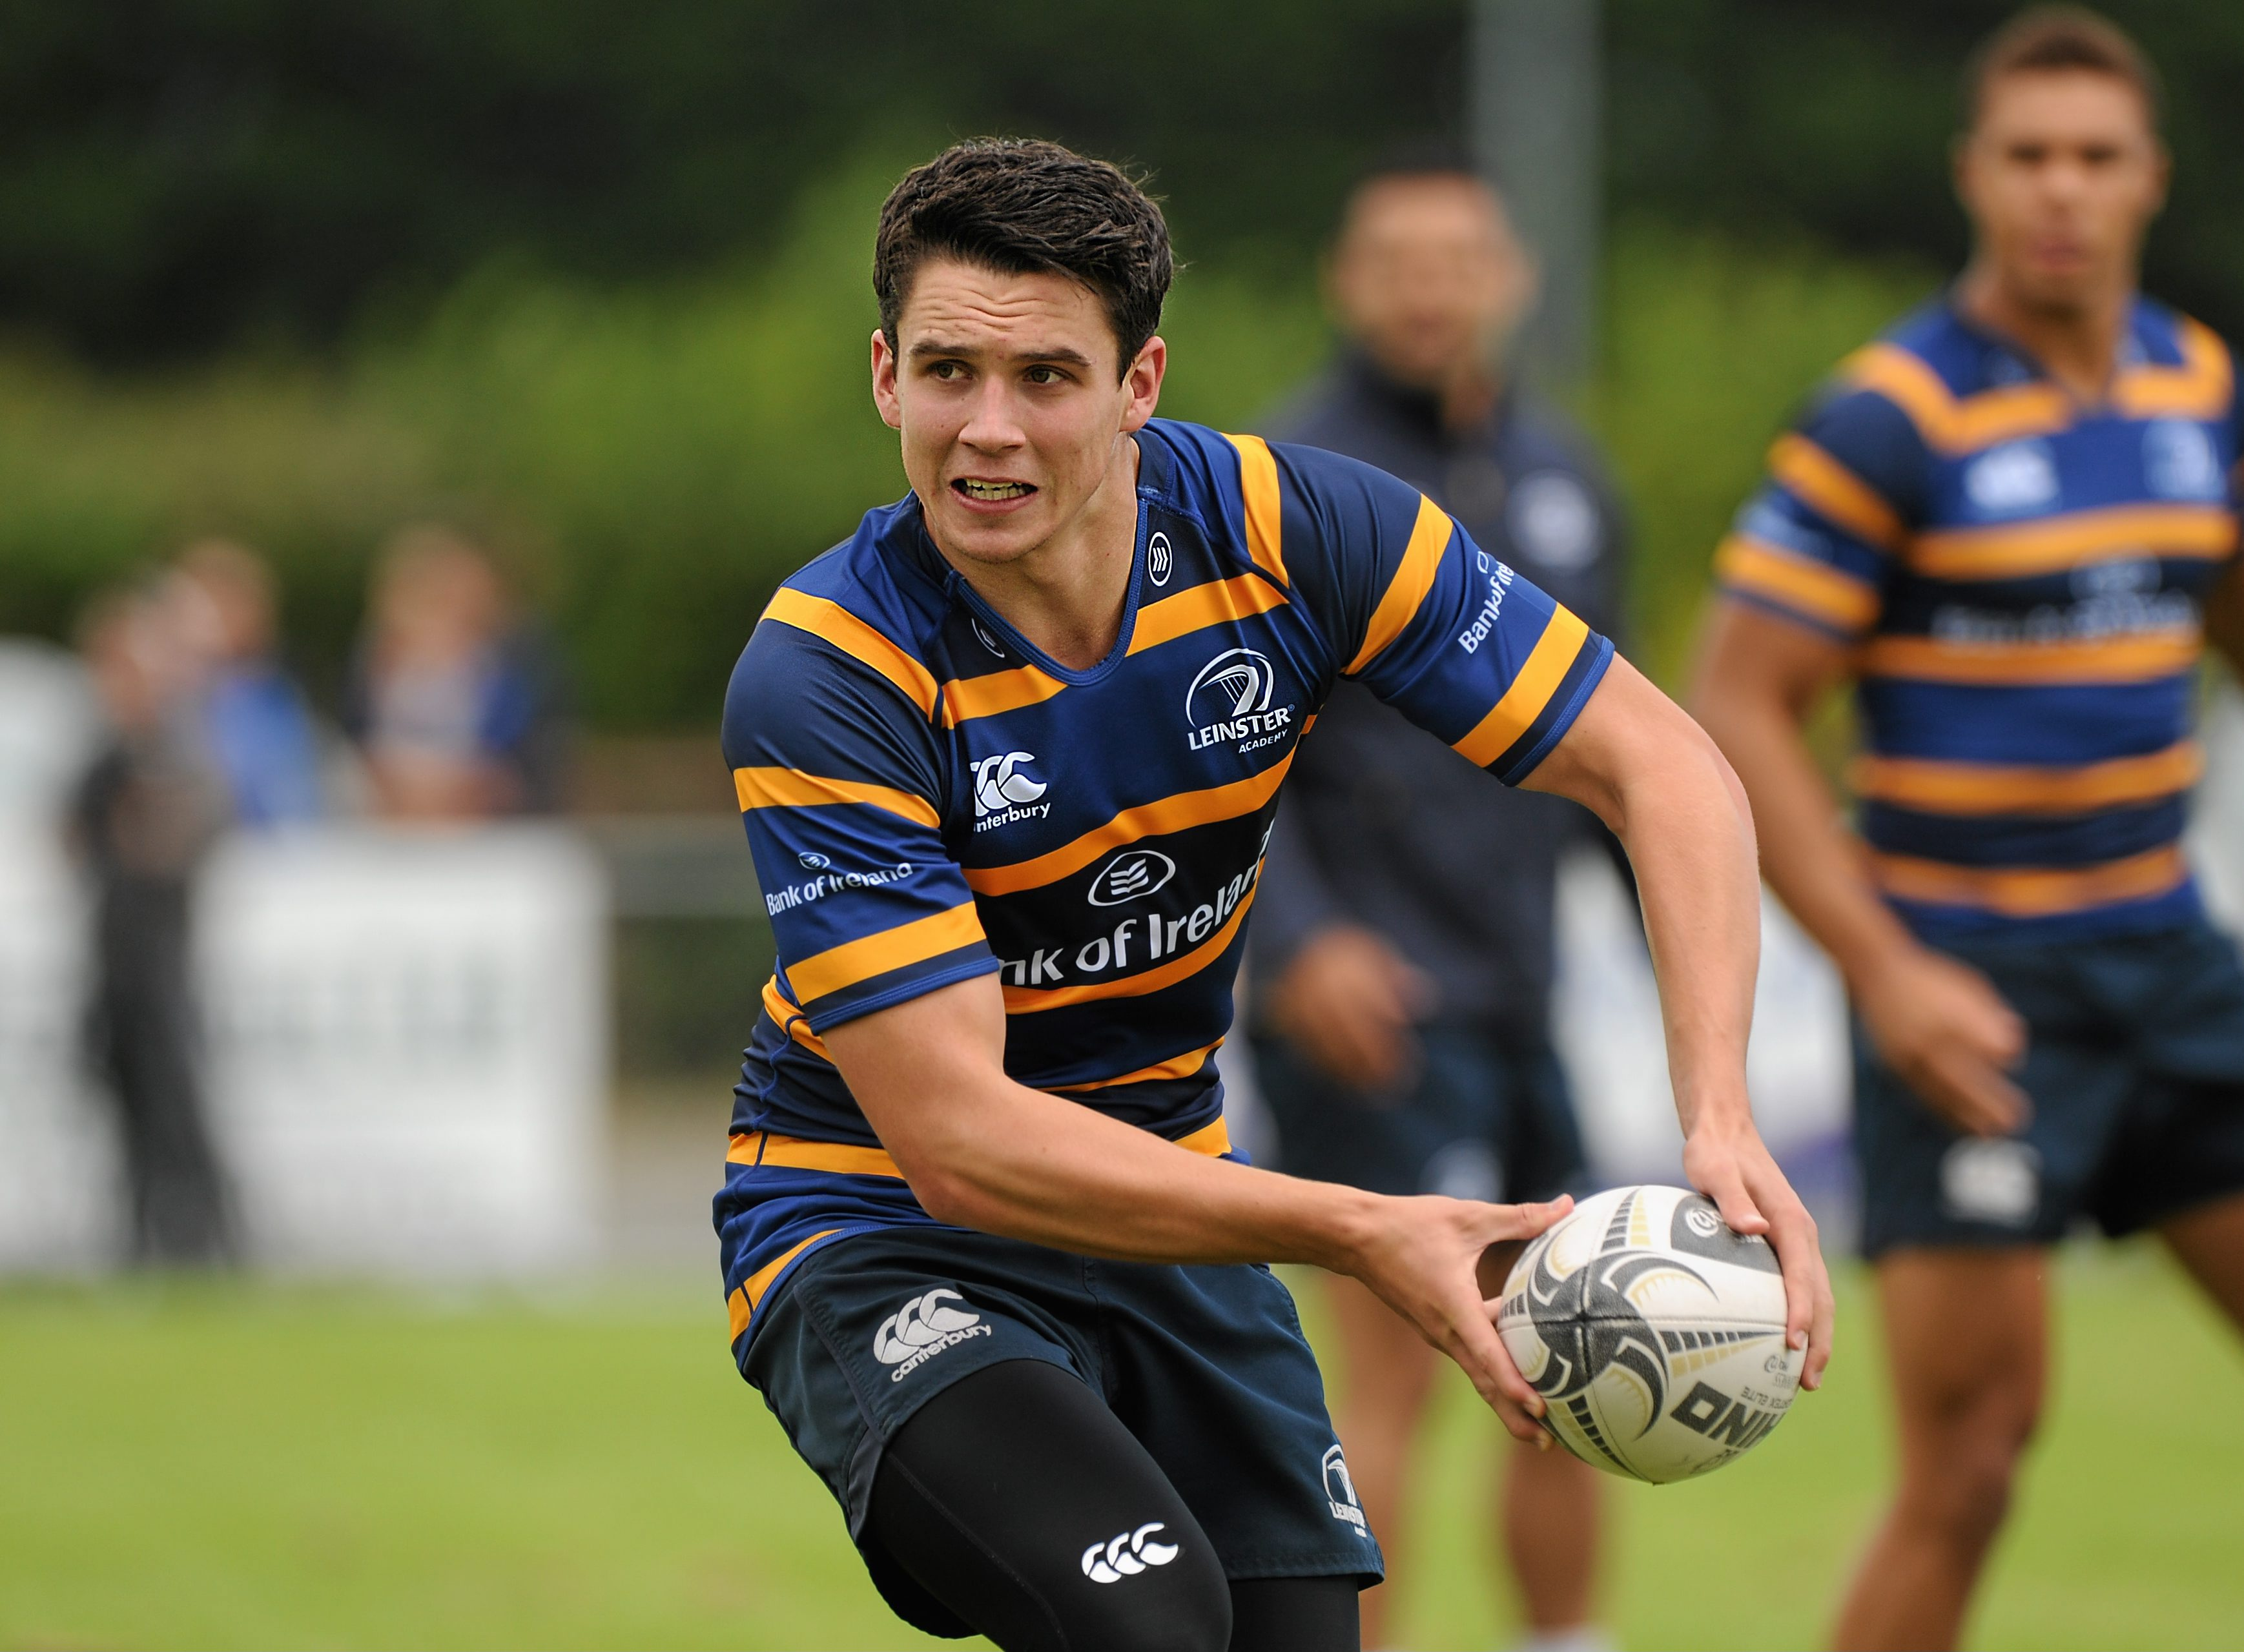 Carbery among five uncapped players in Ireland squad